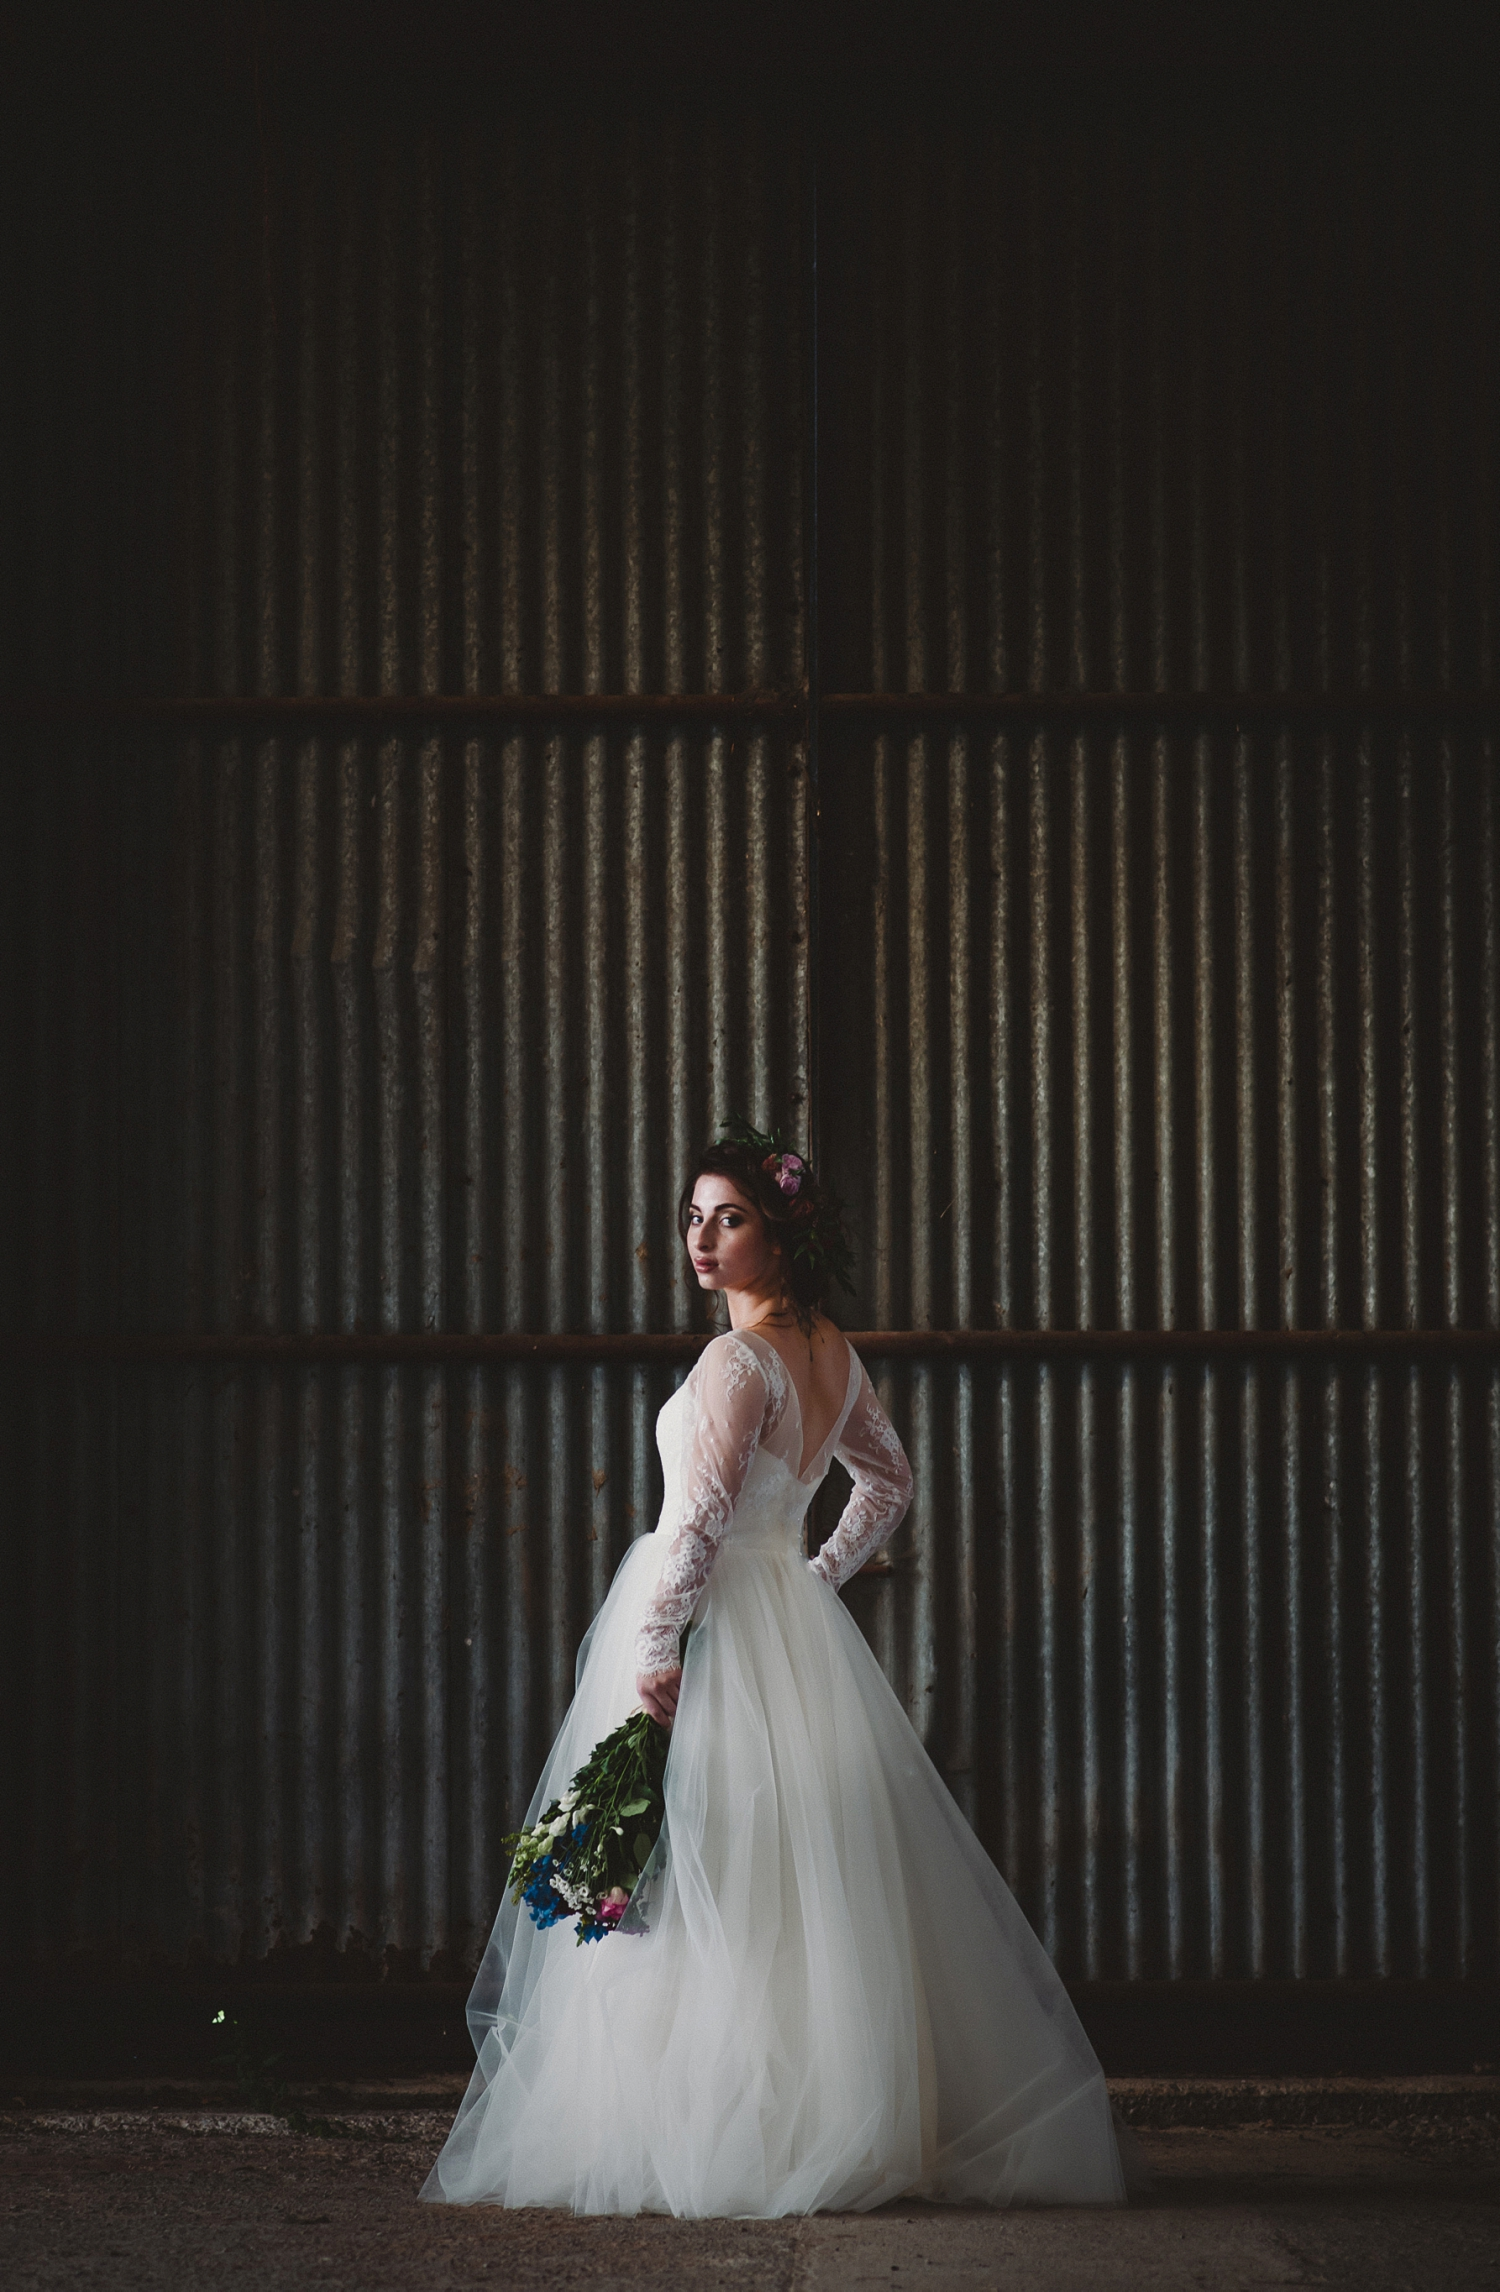 Curradine_bridal_Sept_17_amytiphoto_0049.jpg